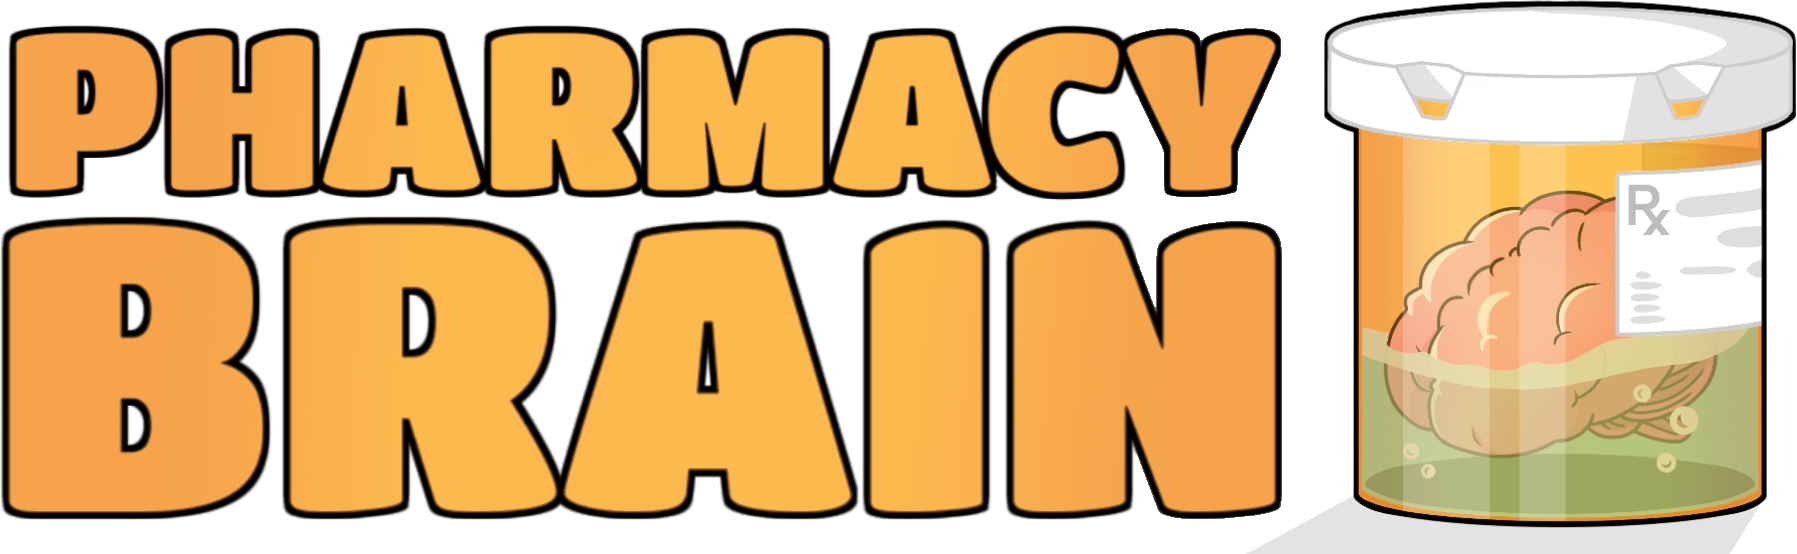 Pharmacy Brain banner